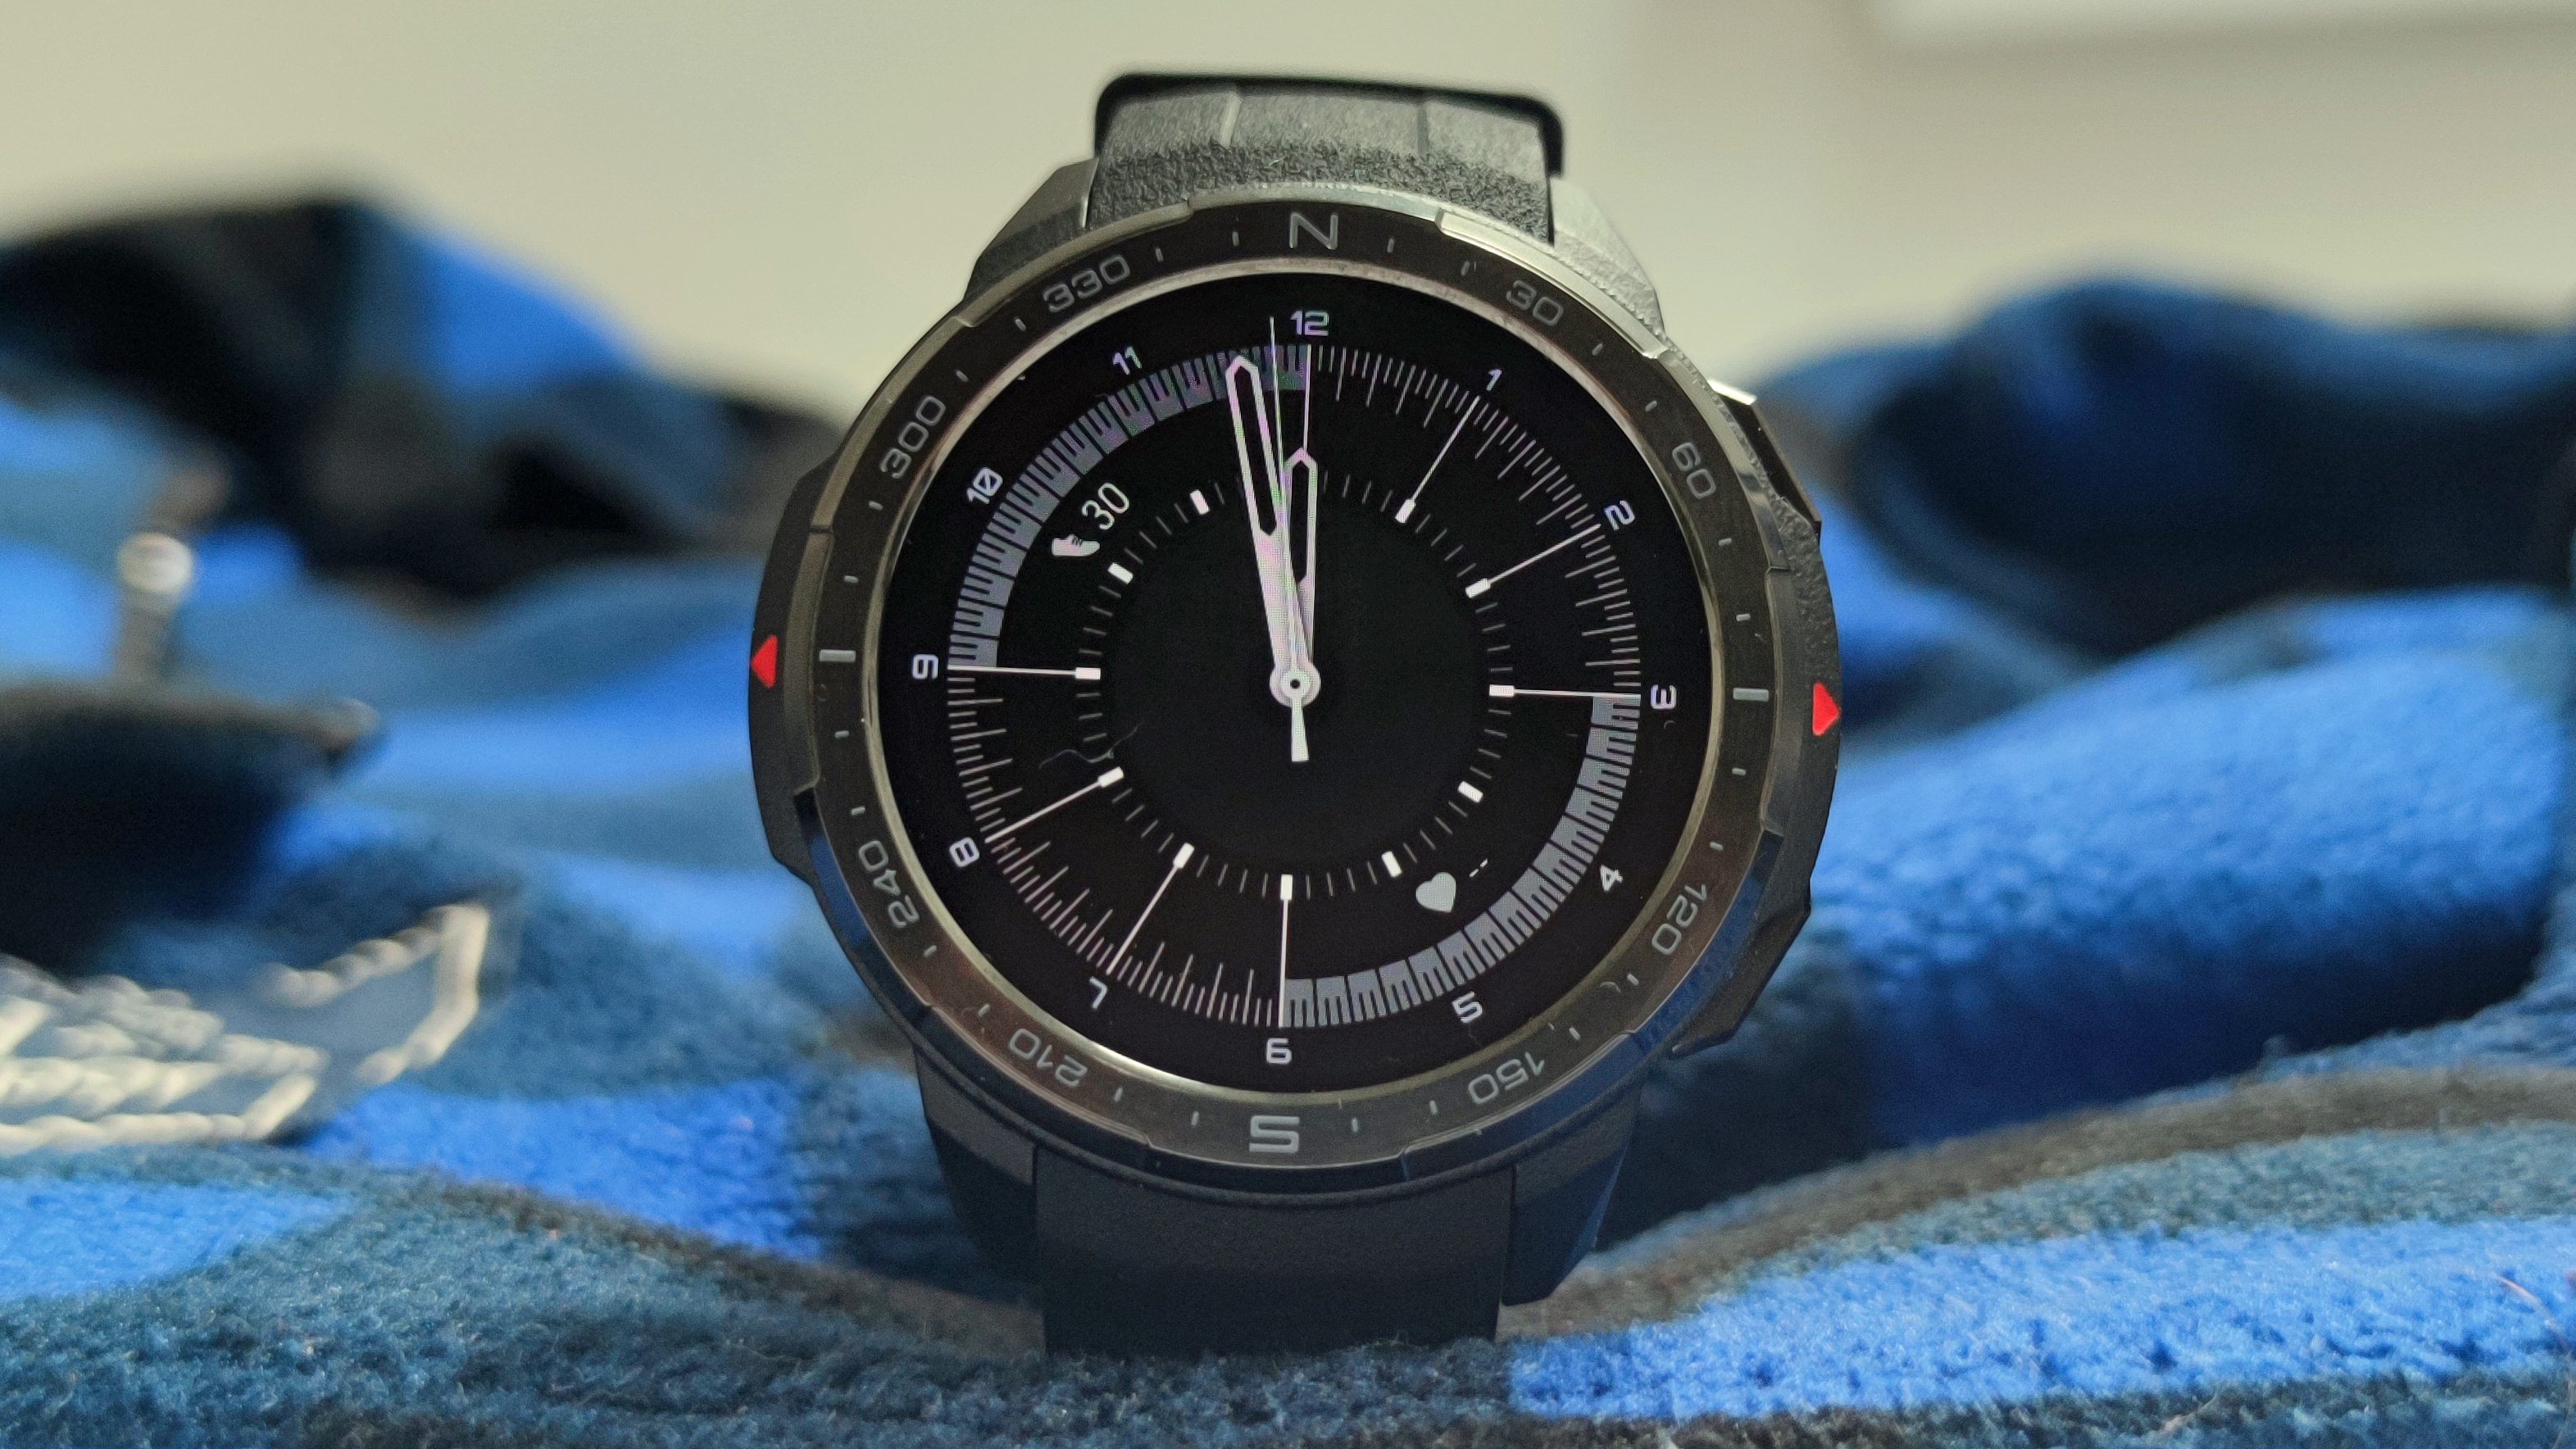 The Honor Watch GS Pro